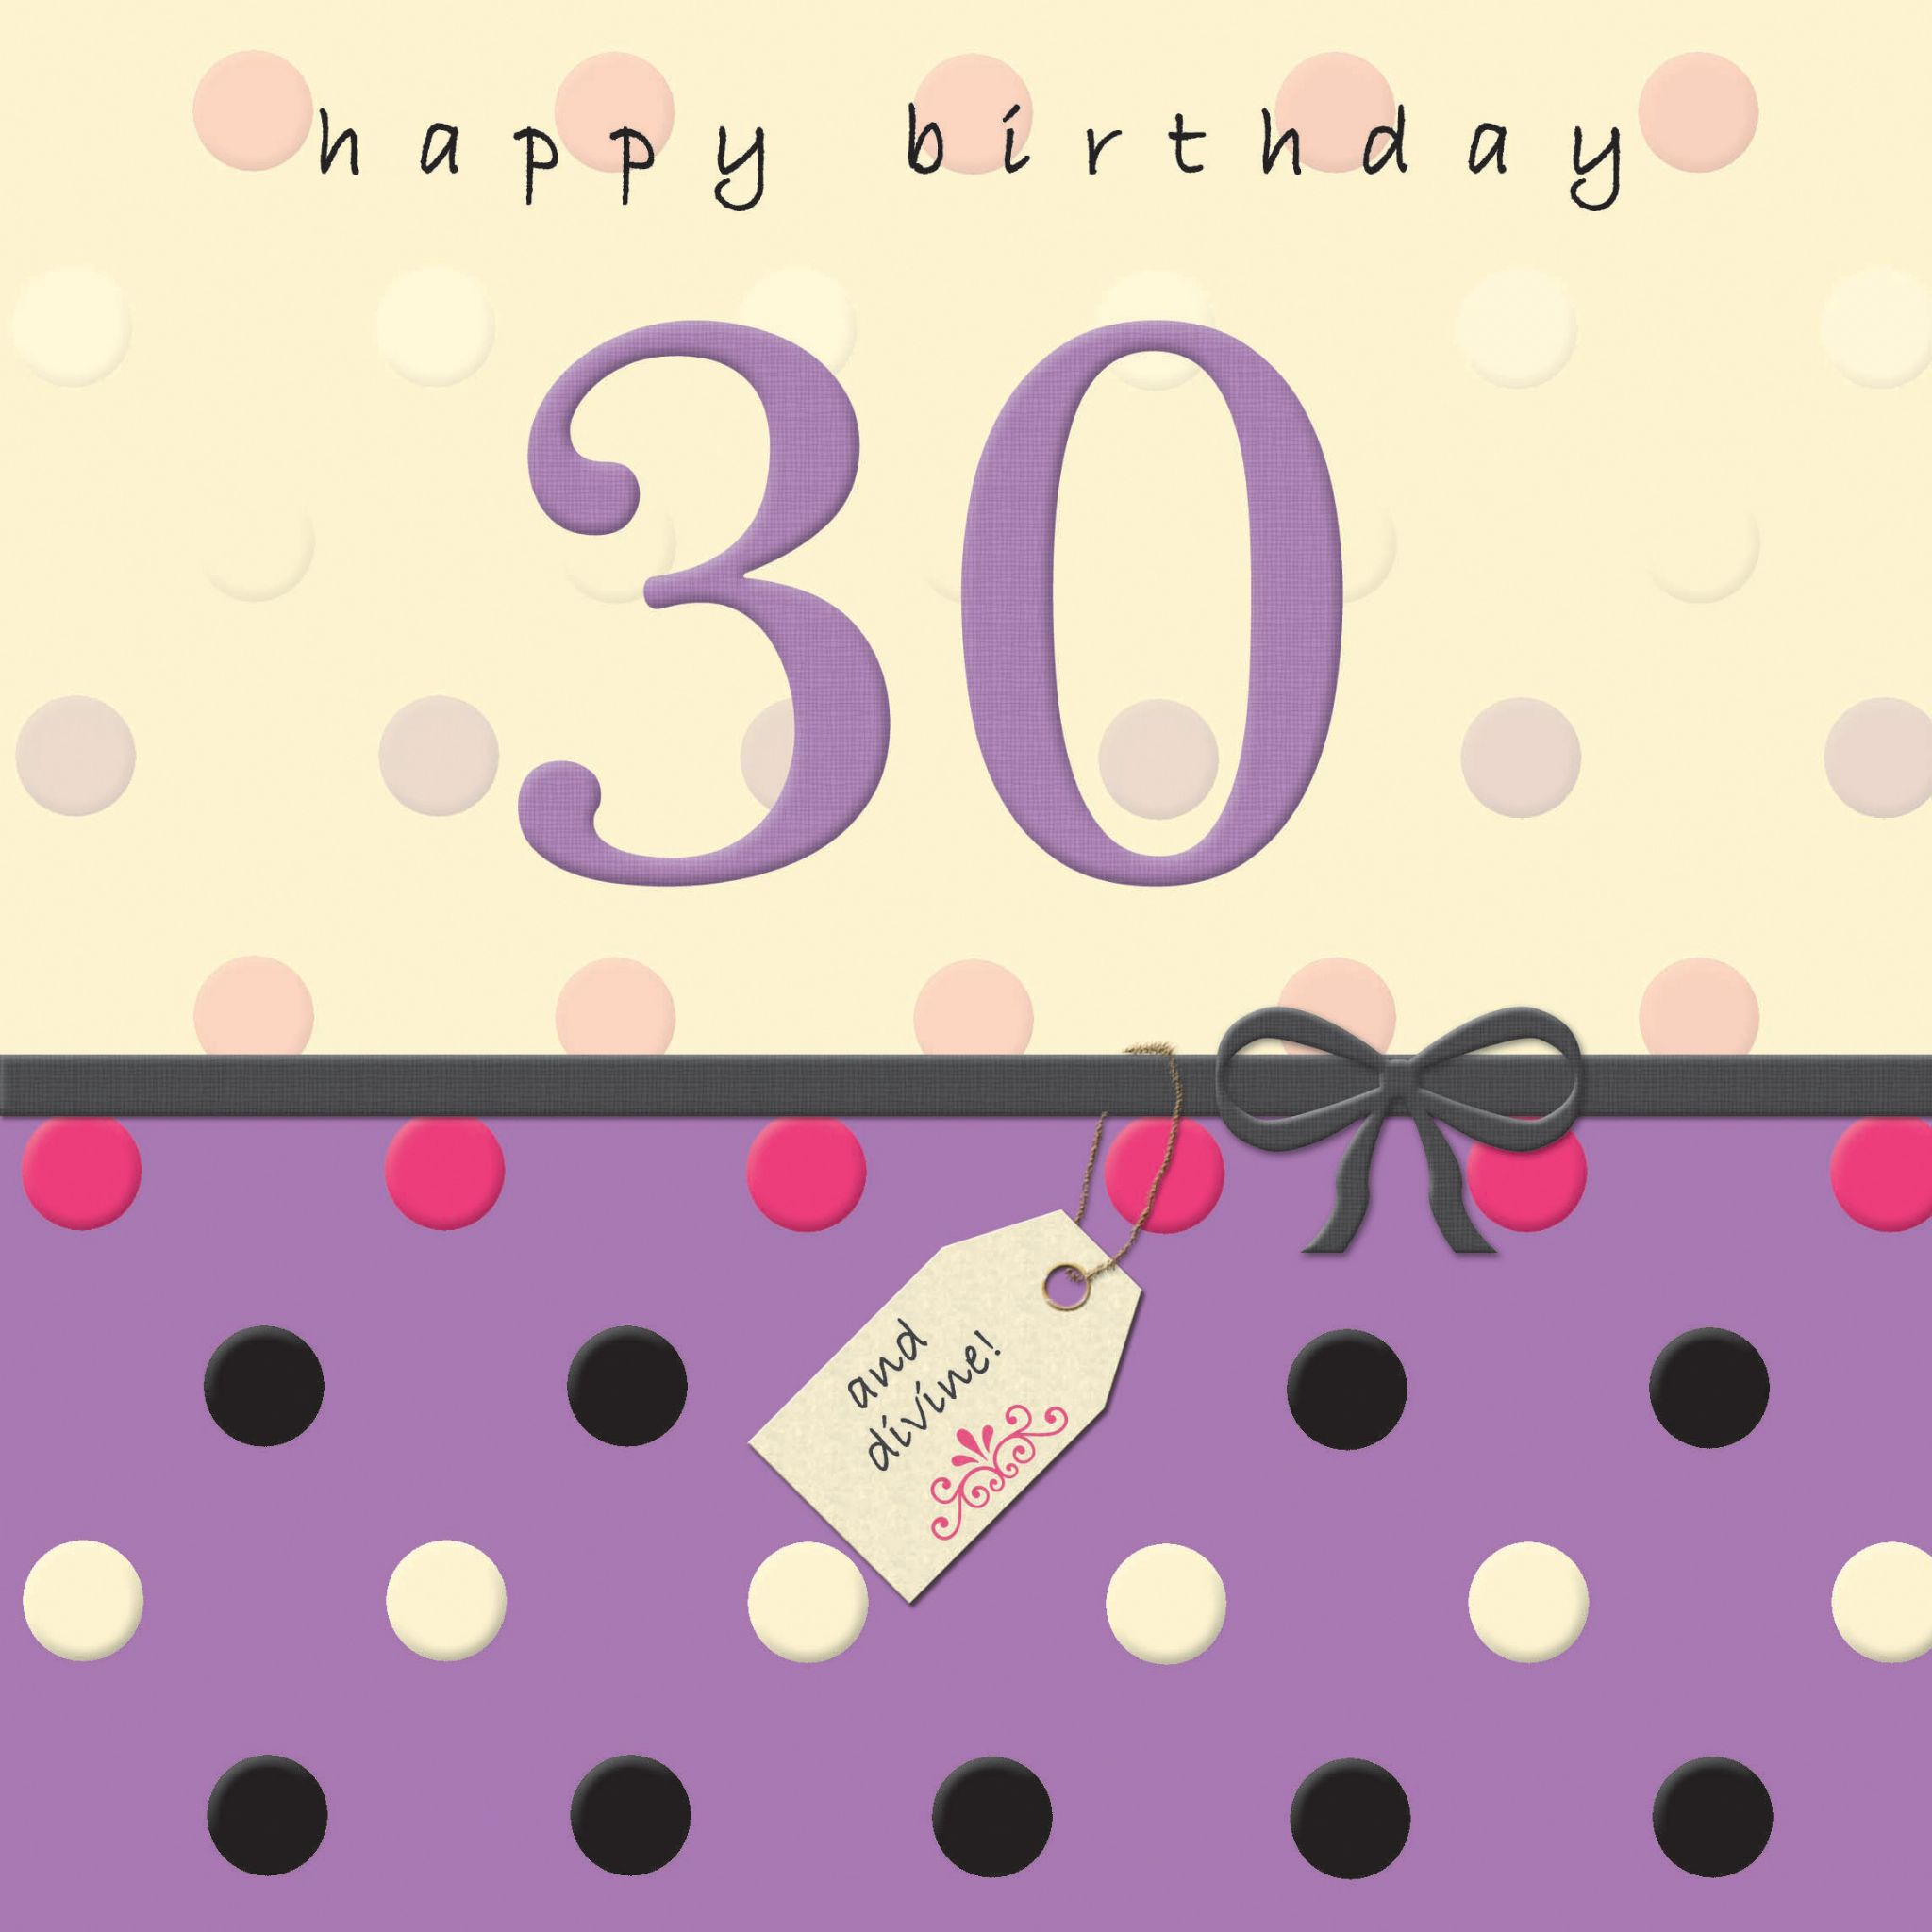 Greeting Card Greeting Card UK birthday greeting cards – Birthday Cards 30